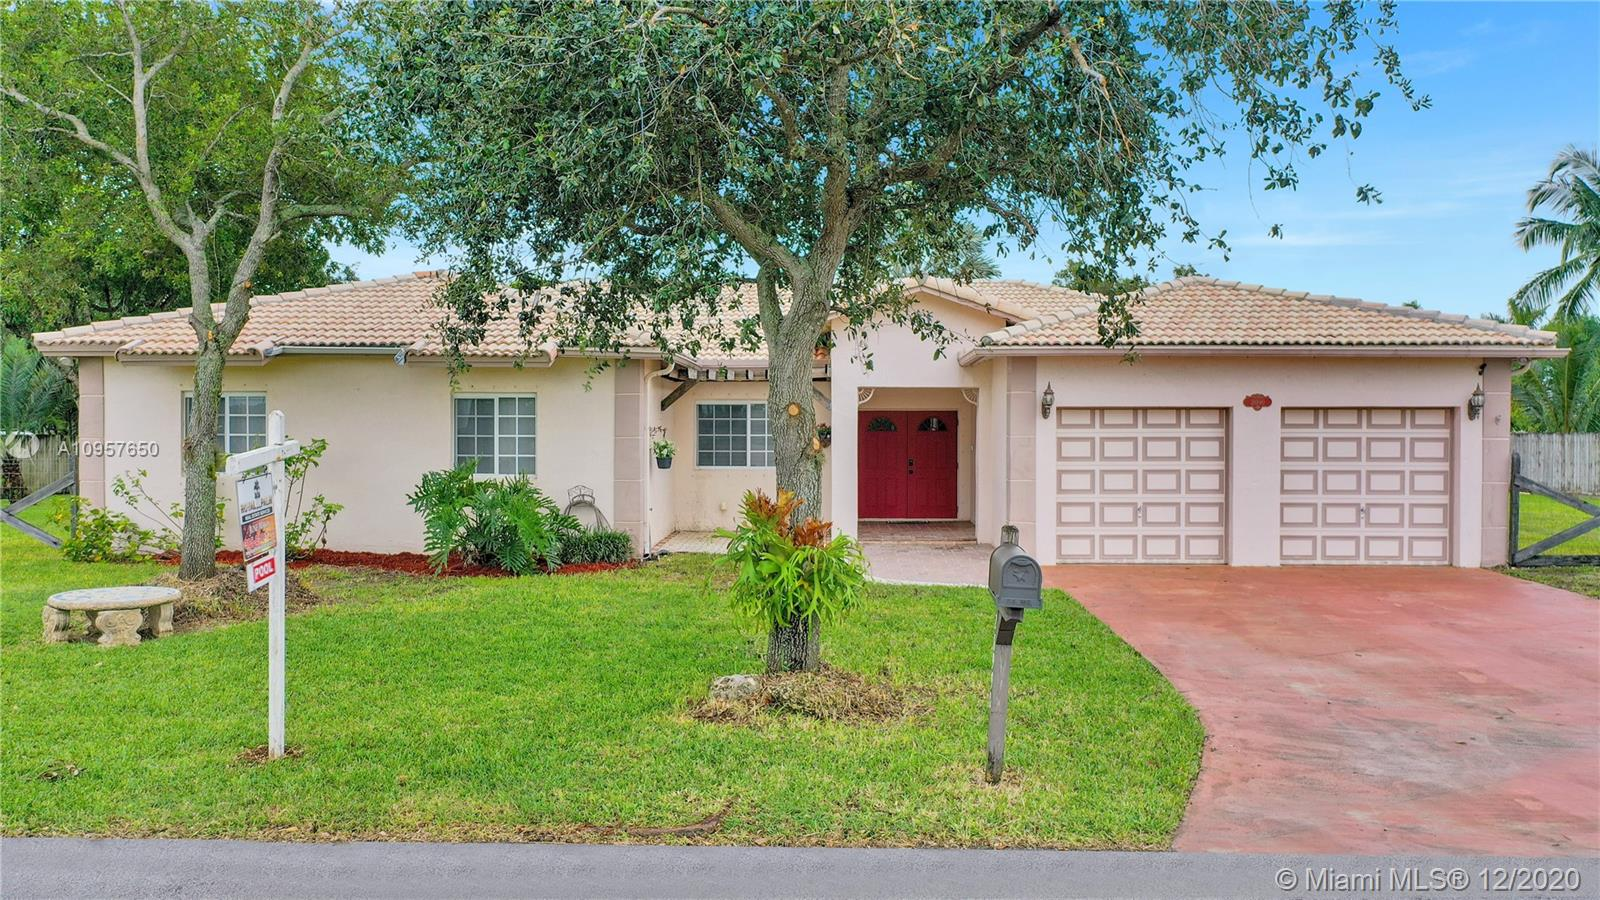 28990 SW 193rd Ave Property Photo - Homestead, FL real estate listing